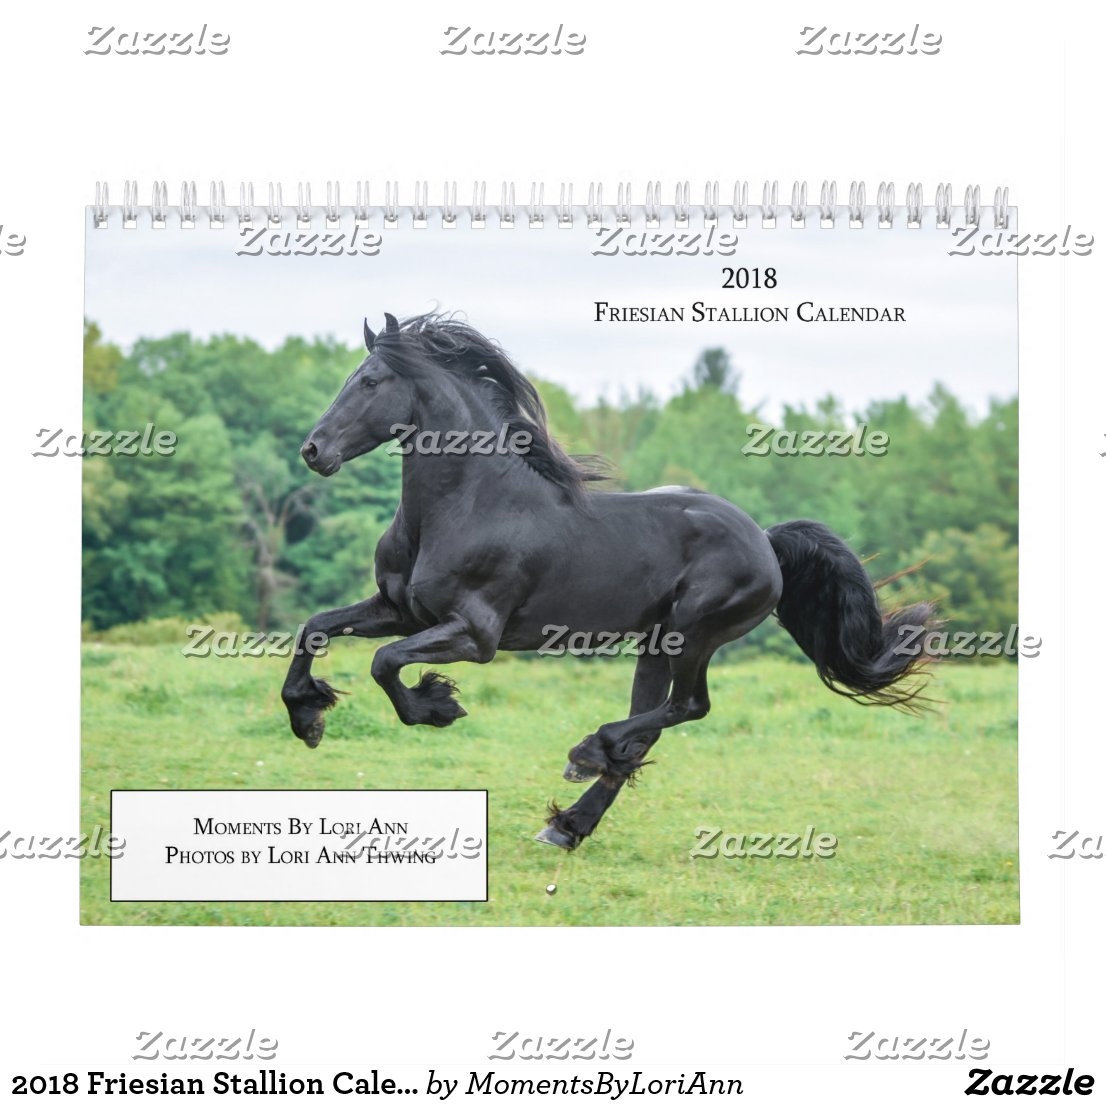 2018 Friesian Stallion Calendar